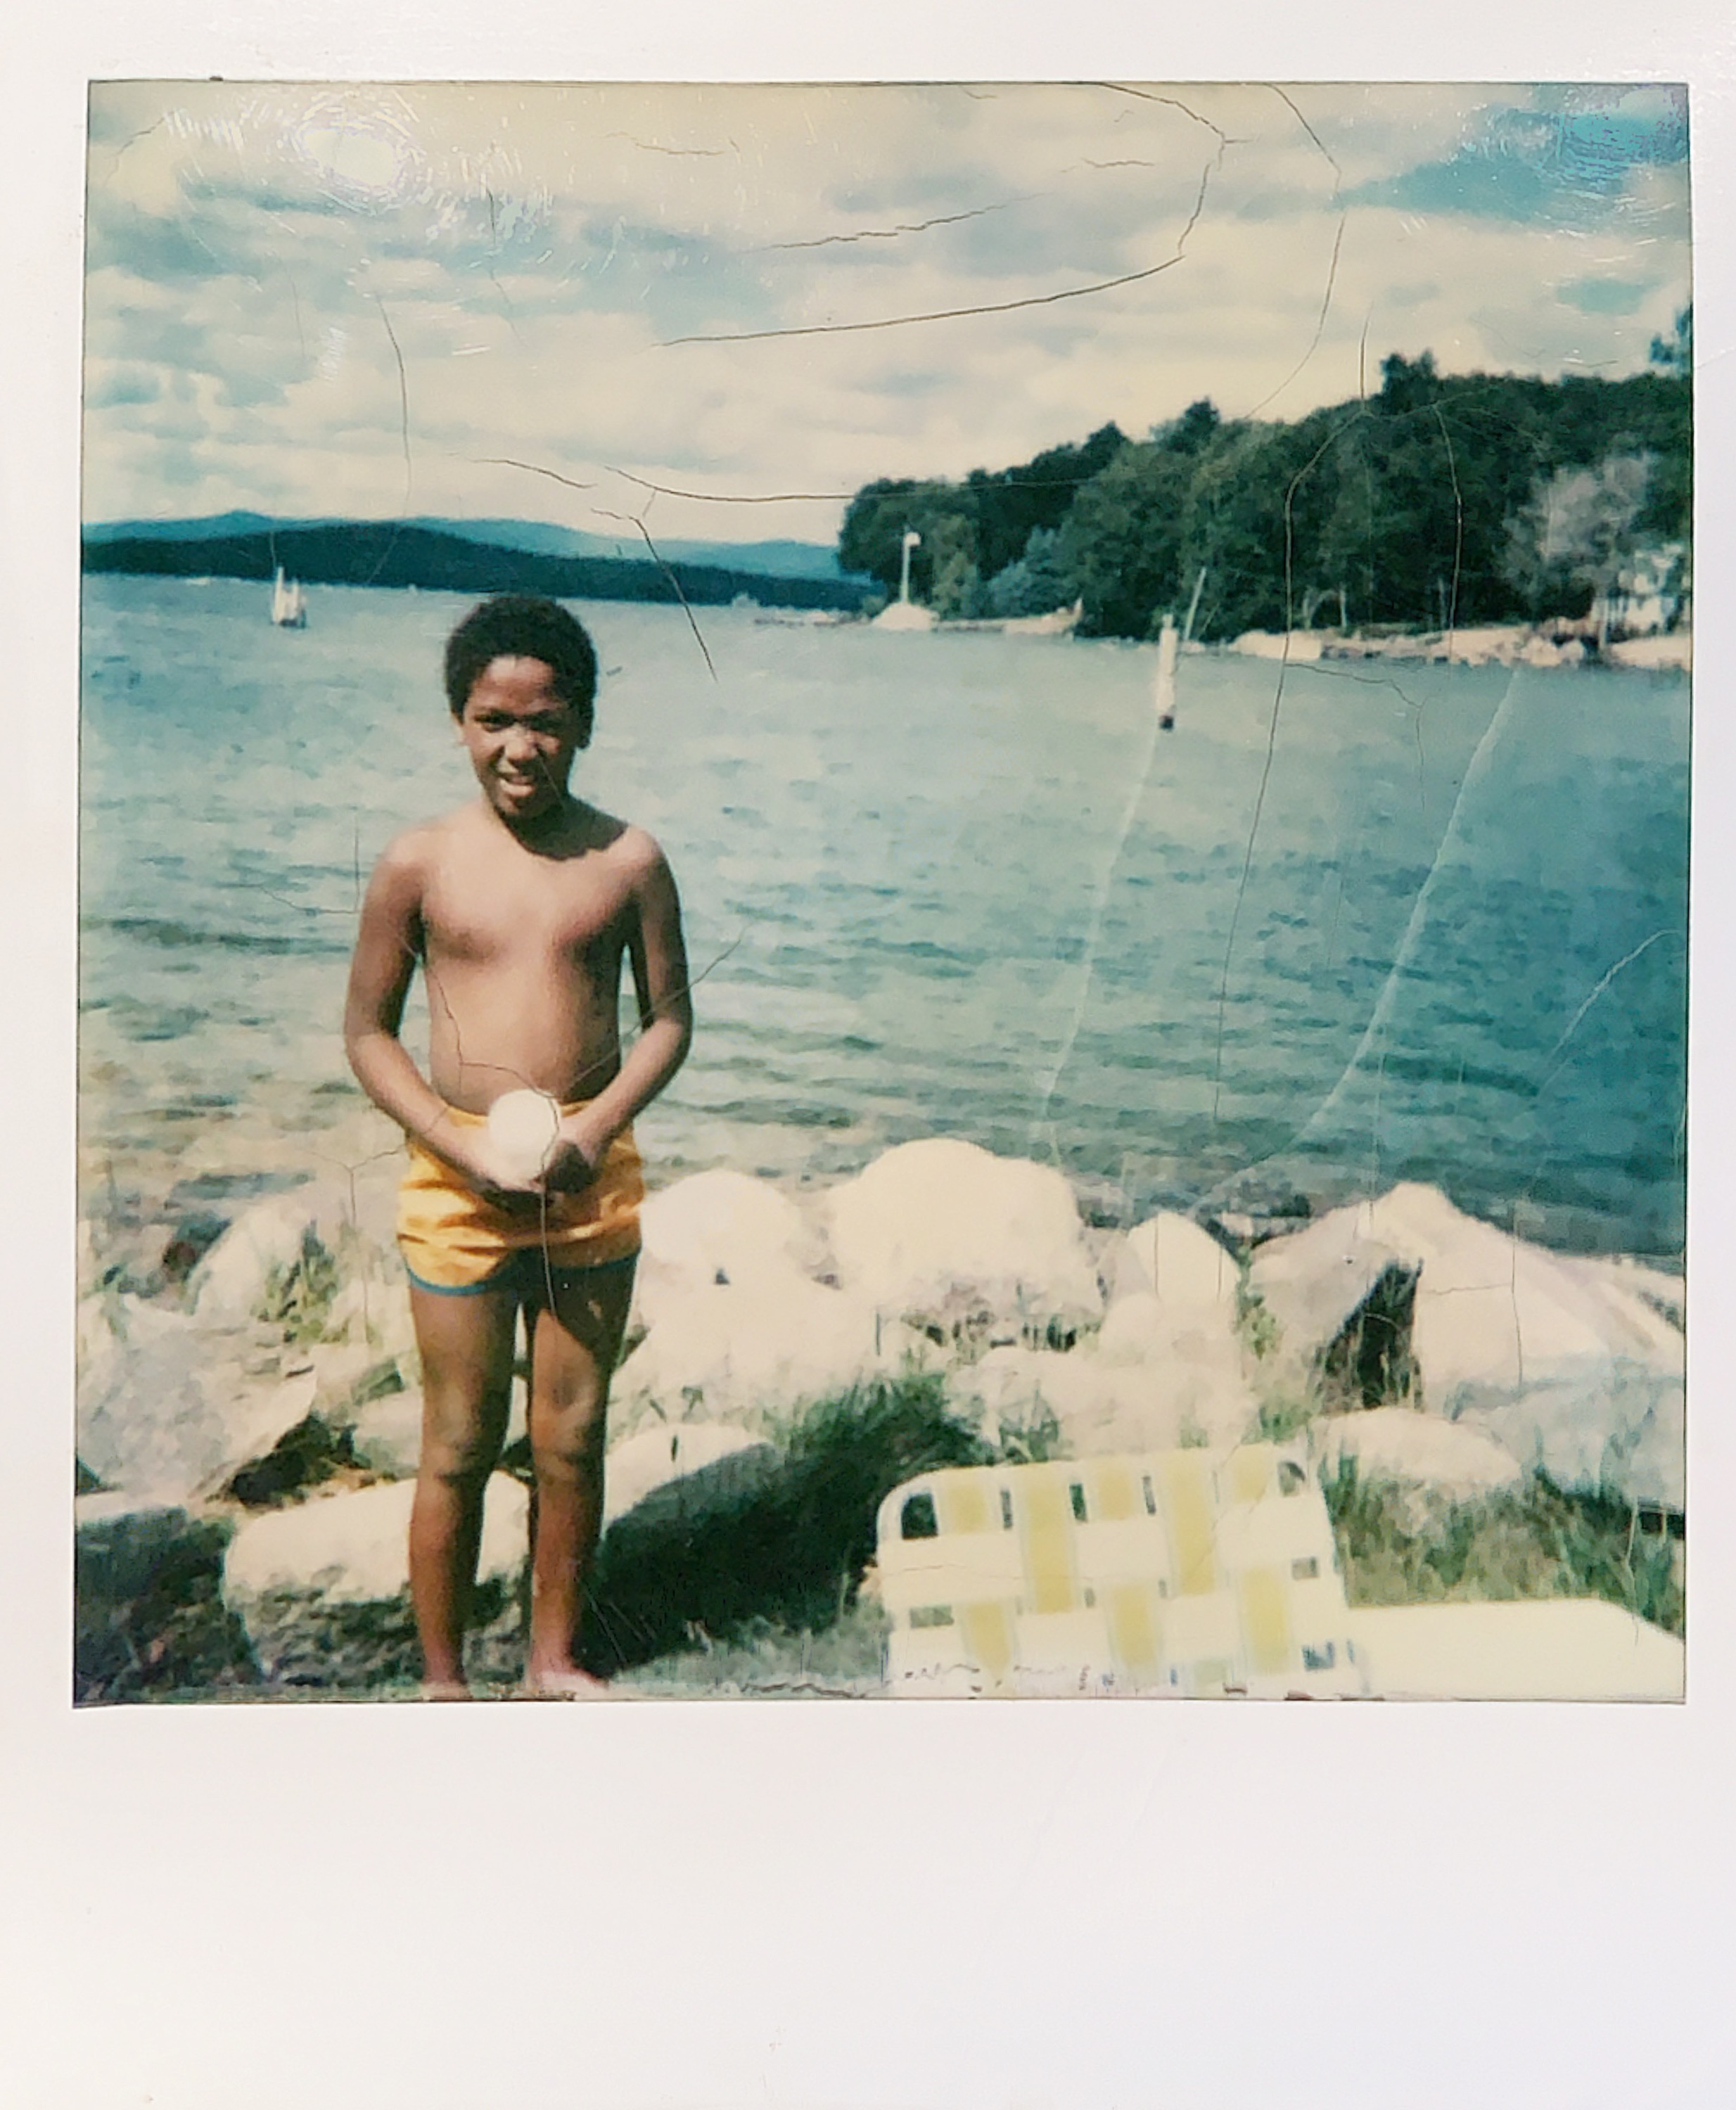 A trip to a lake in the 1980s